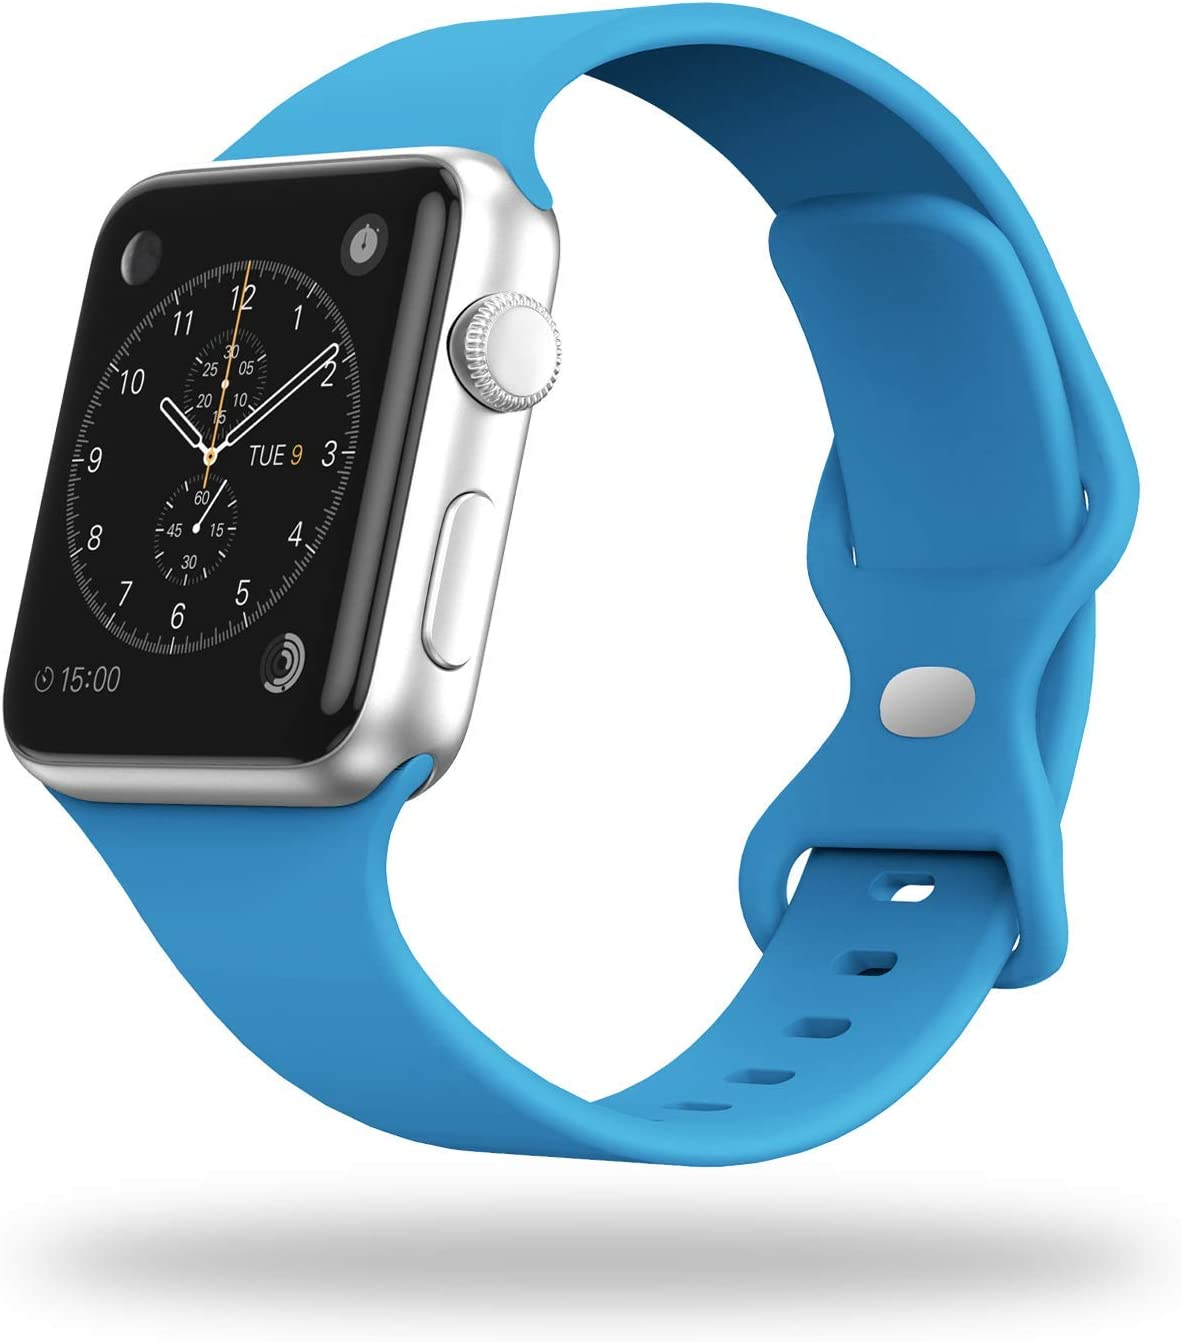 STG Smart Watch Band Compatible with Apple Watch Band 38mm 40mm 42mm 44mm, Soft Silicone Replacement Sport Strap Compatible for iWatch SE Series 6/5/4/3/2/1 (38/40mm, Surf Blue)